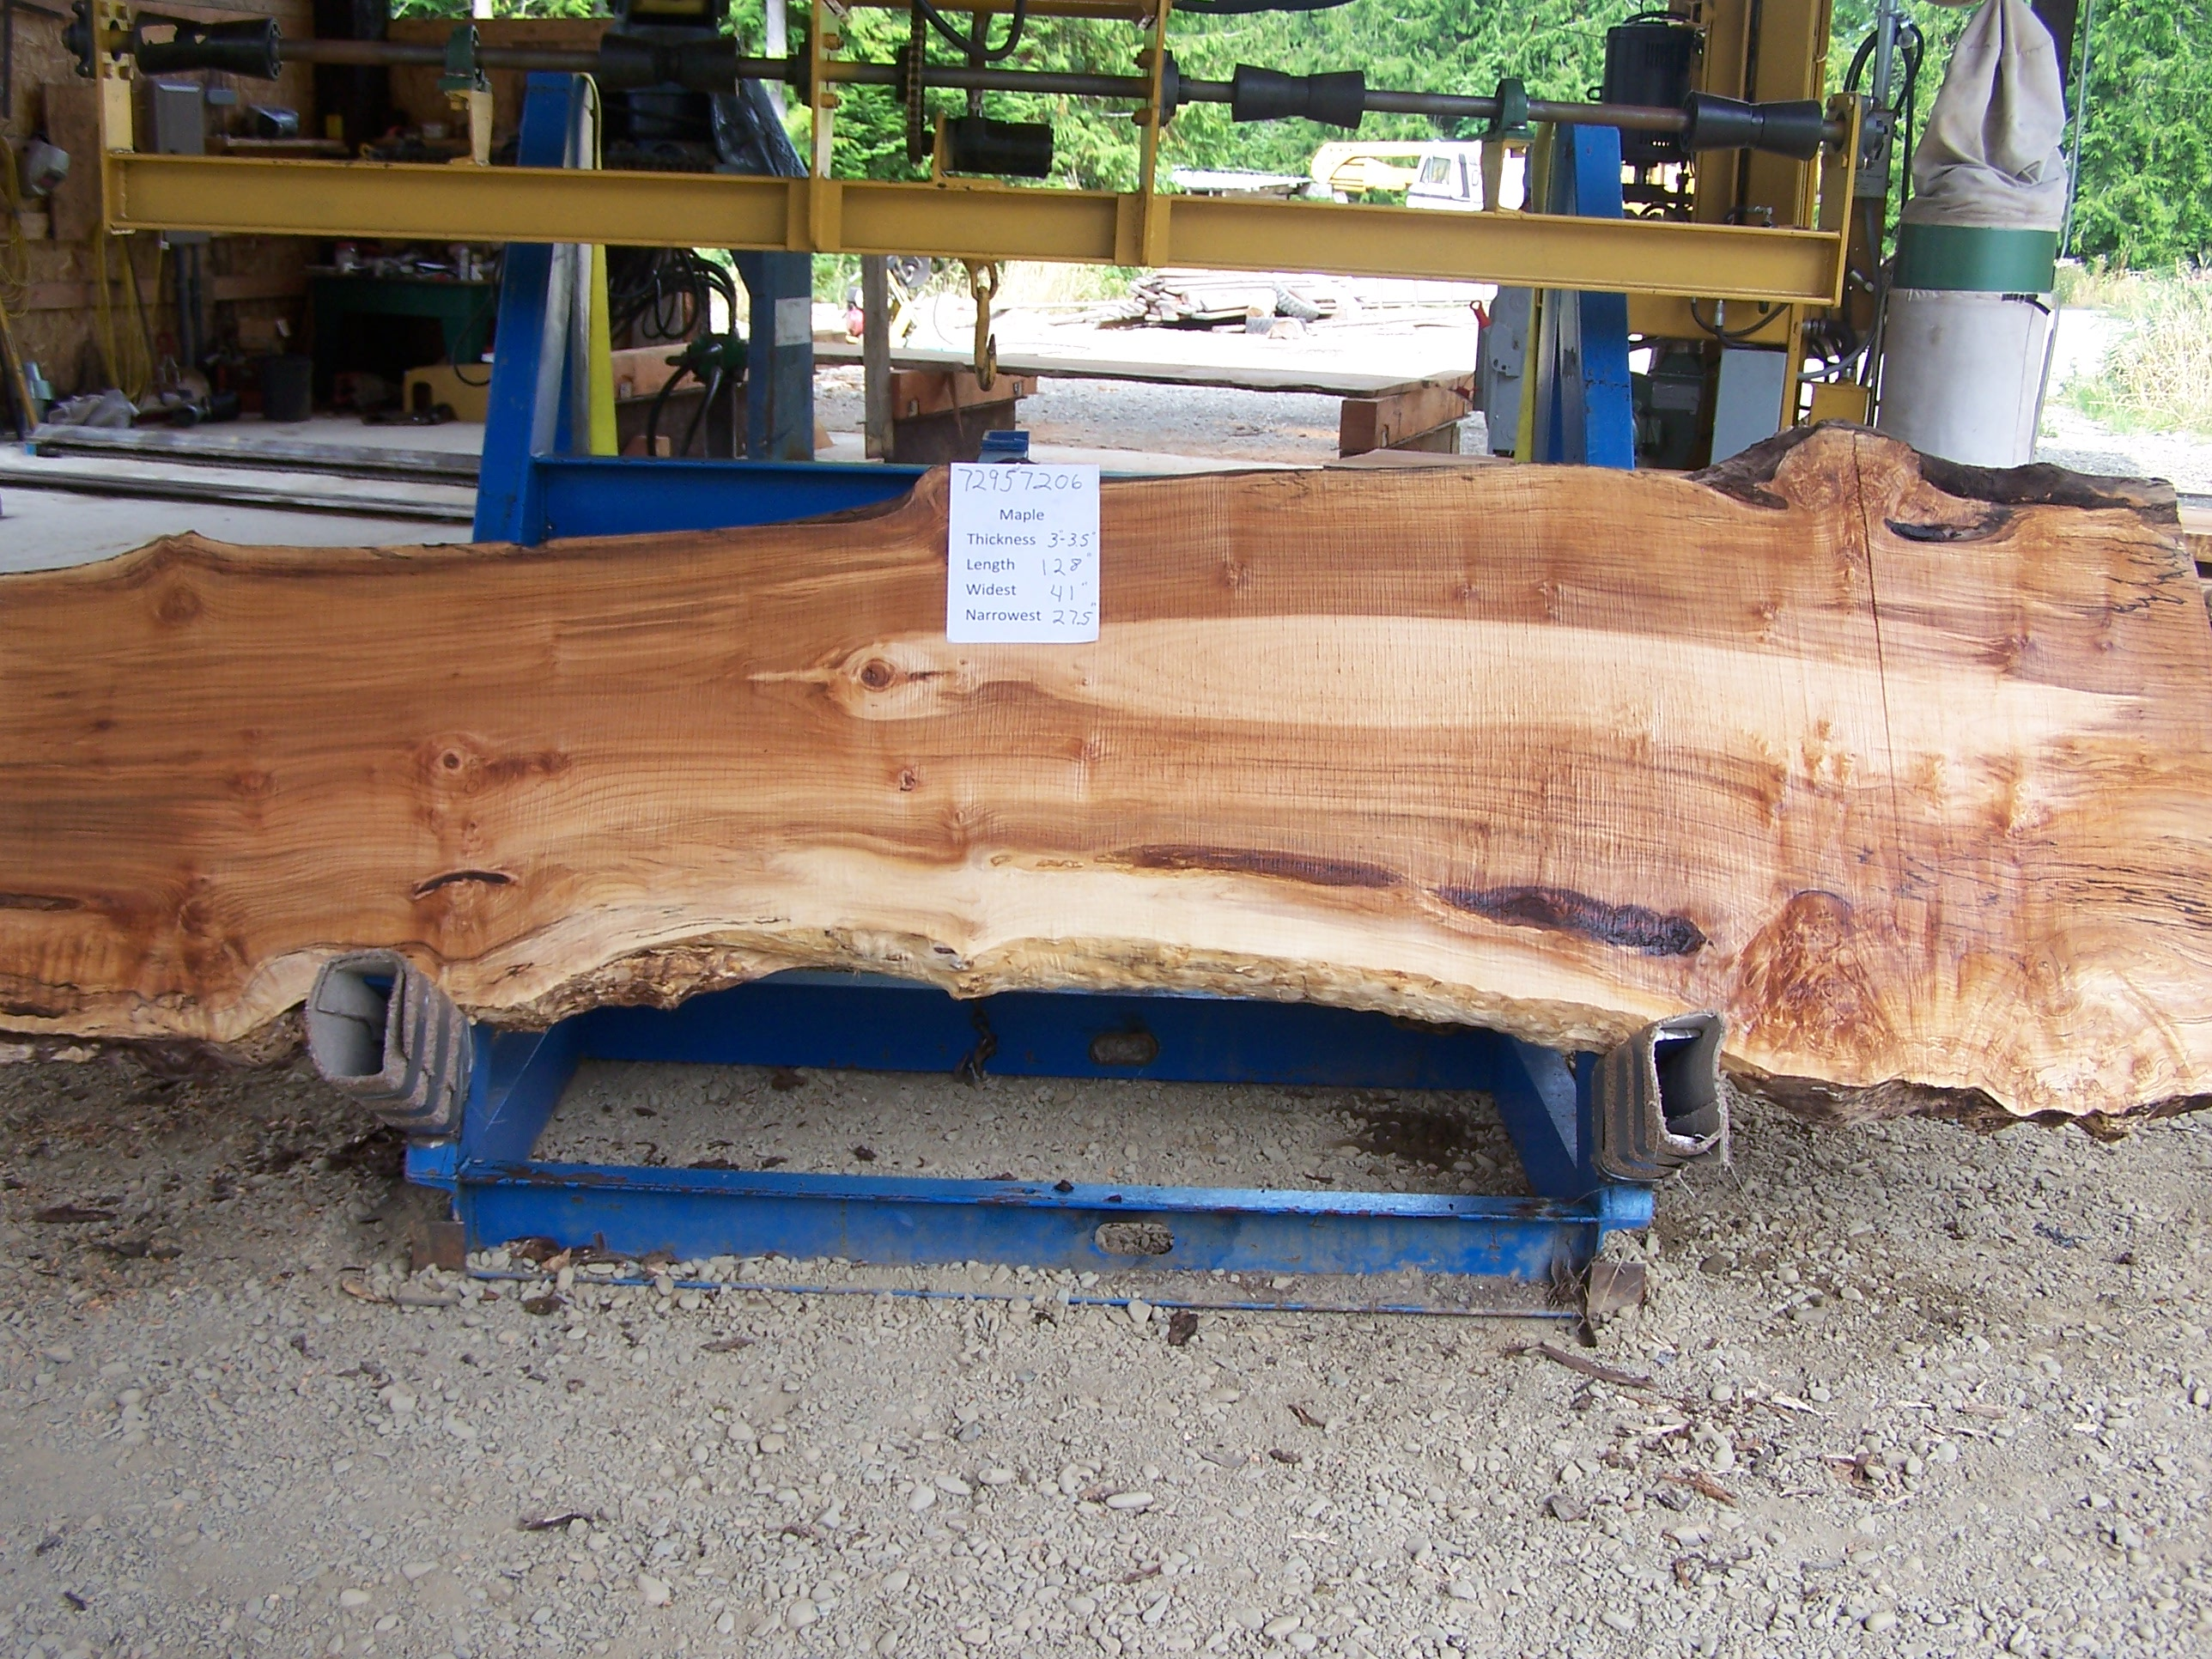 Maple Slab 57206